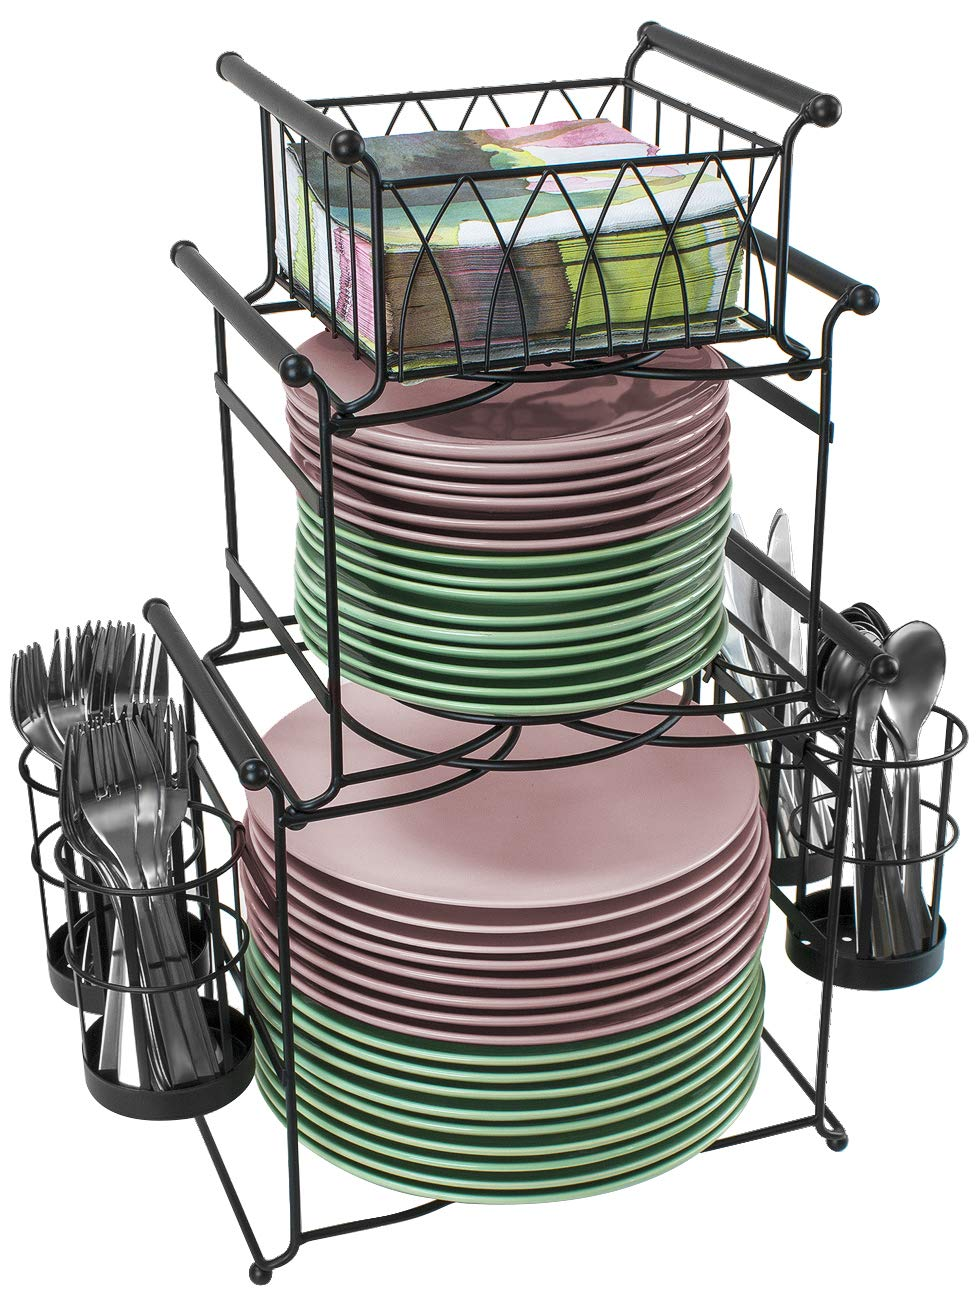 Sorbus Buffet Caddy — 7-Piece Stackable Set Includes Plate, Napkin, and Silverware Holder, 3-Tier Detachable Tabletop Organizer — Ideal for Kitchen, Dining, Entertaining, Parties, Picnics, (Black)